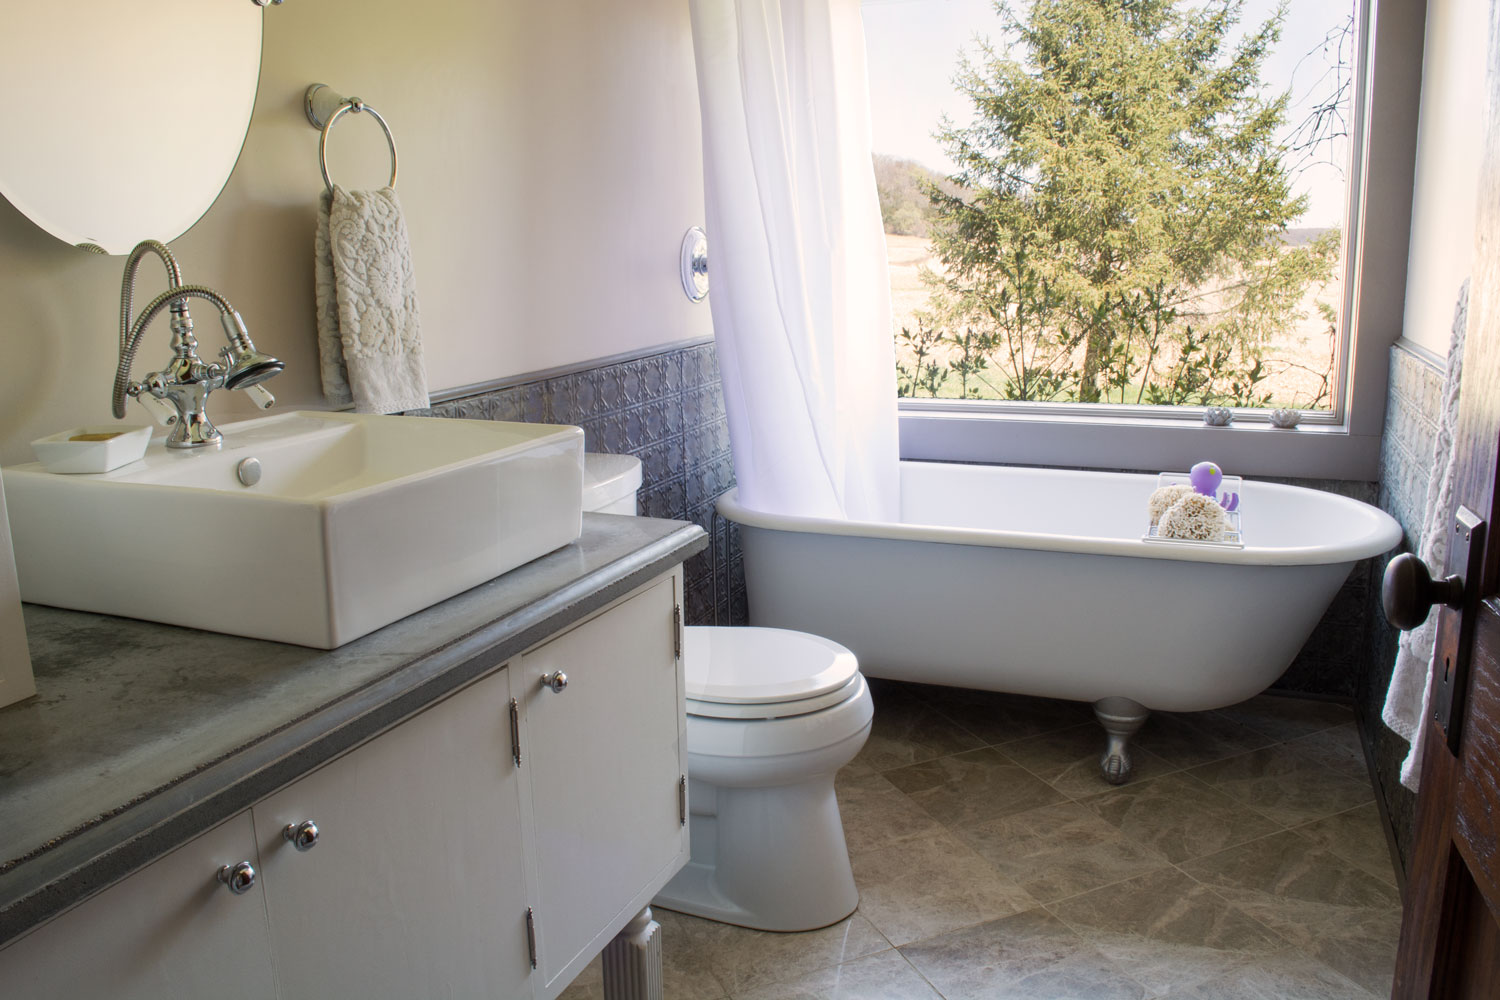 This bath is composed of many salvaged materials; the wainscoting was salvaged from an old ceiling and refinished; the tile was found in a remnant warehouse. The window, which helps the narrow room feel wider, was at a local ReStore, and the tub was salvaged locally and refinished. Counters are concrete.